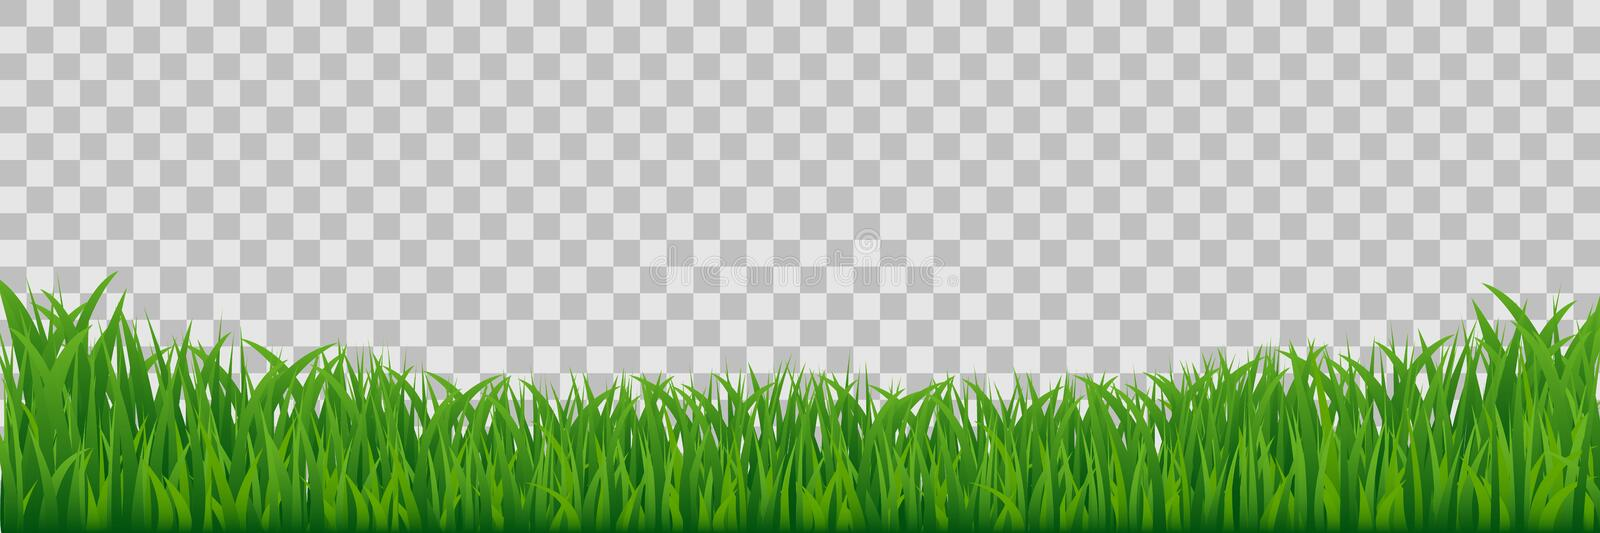 Green Meadow Grass Border Isolated On Transparent Background. stock photography